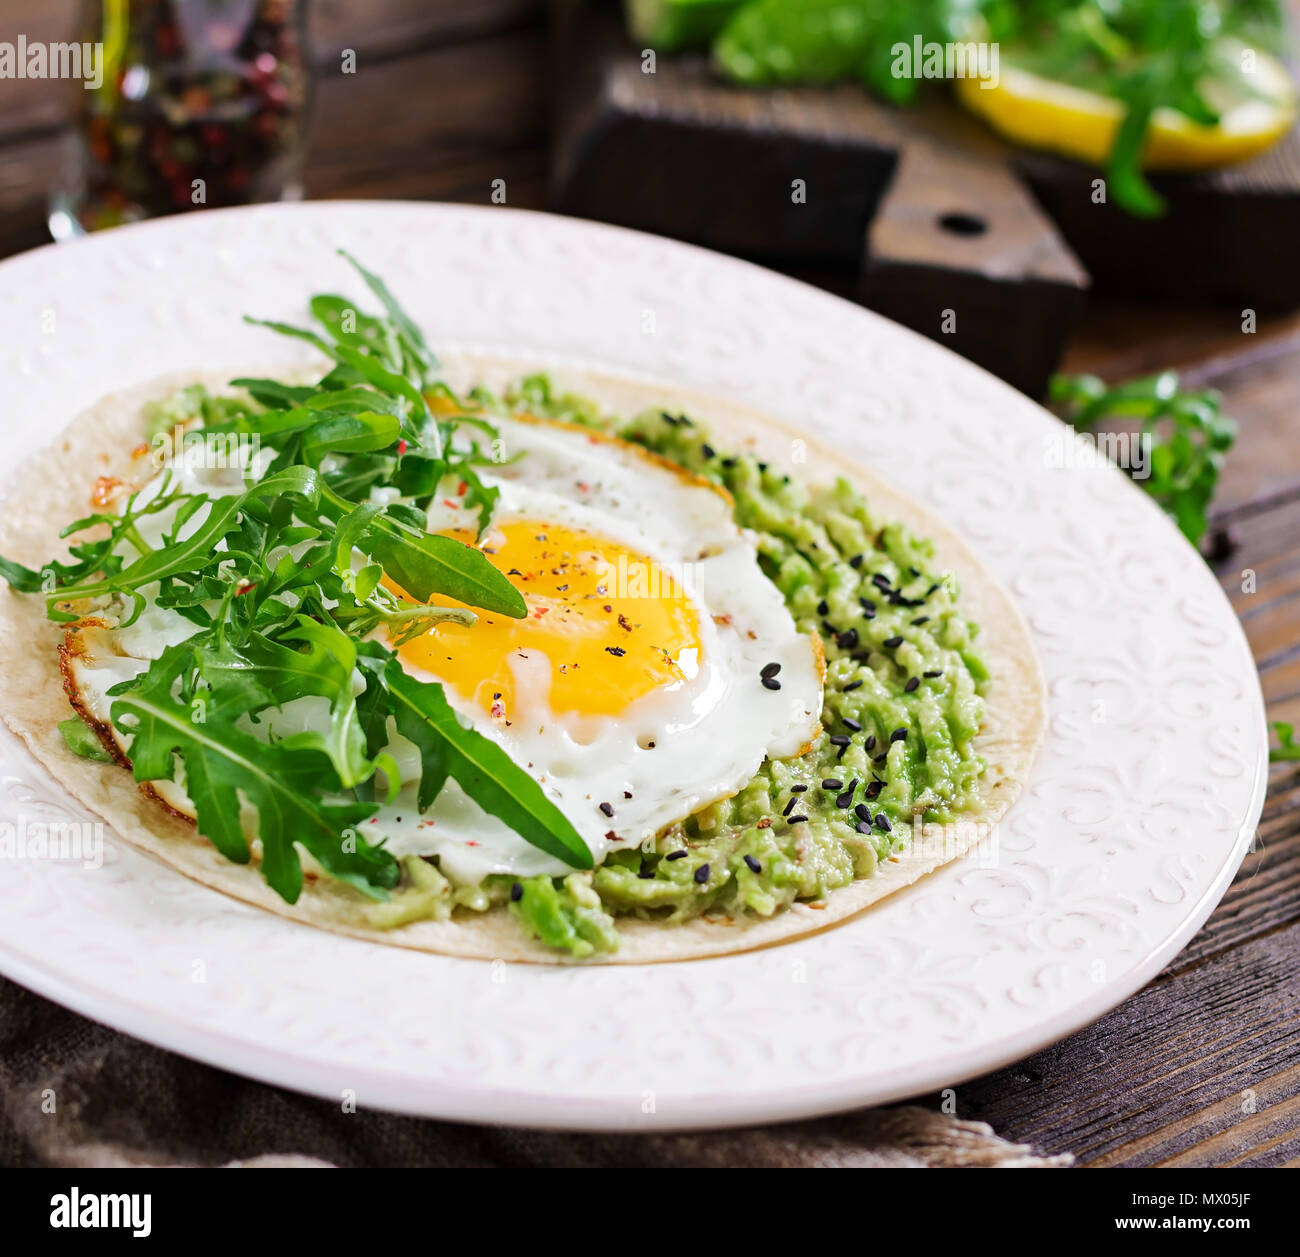 Tacos with guacamole, fried egg and arugula. Healthy food. Useful breakfast. - Stock Image